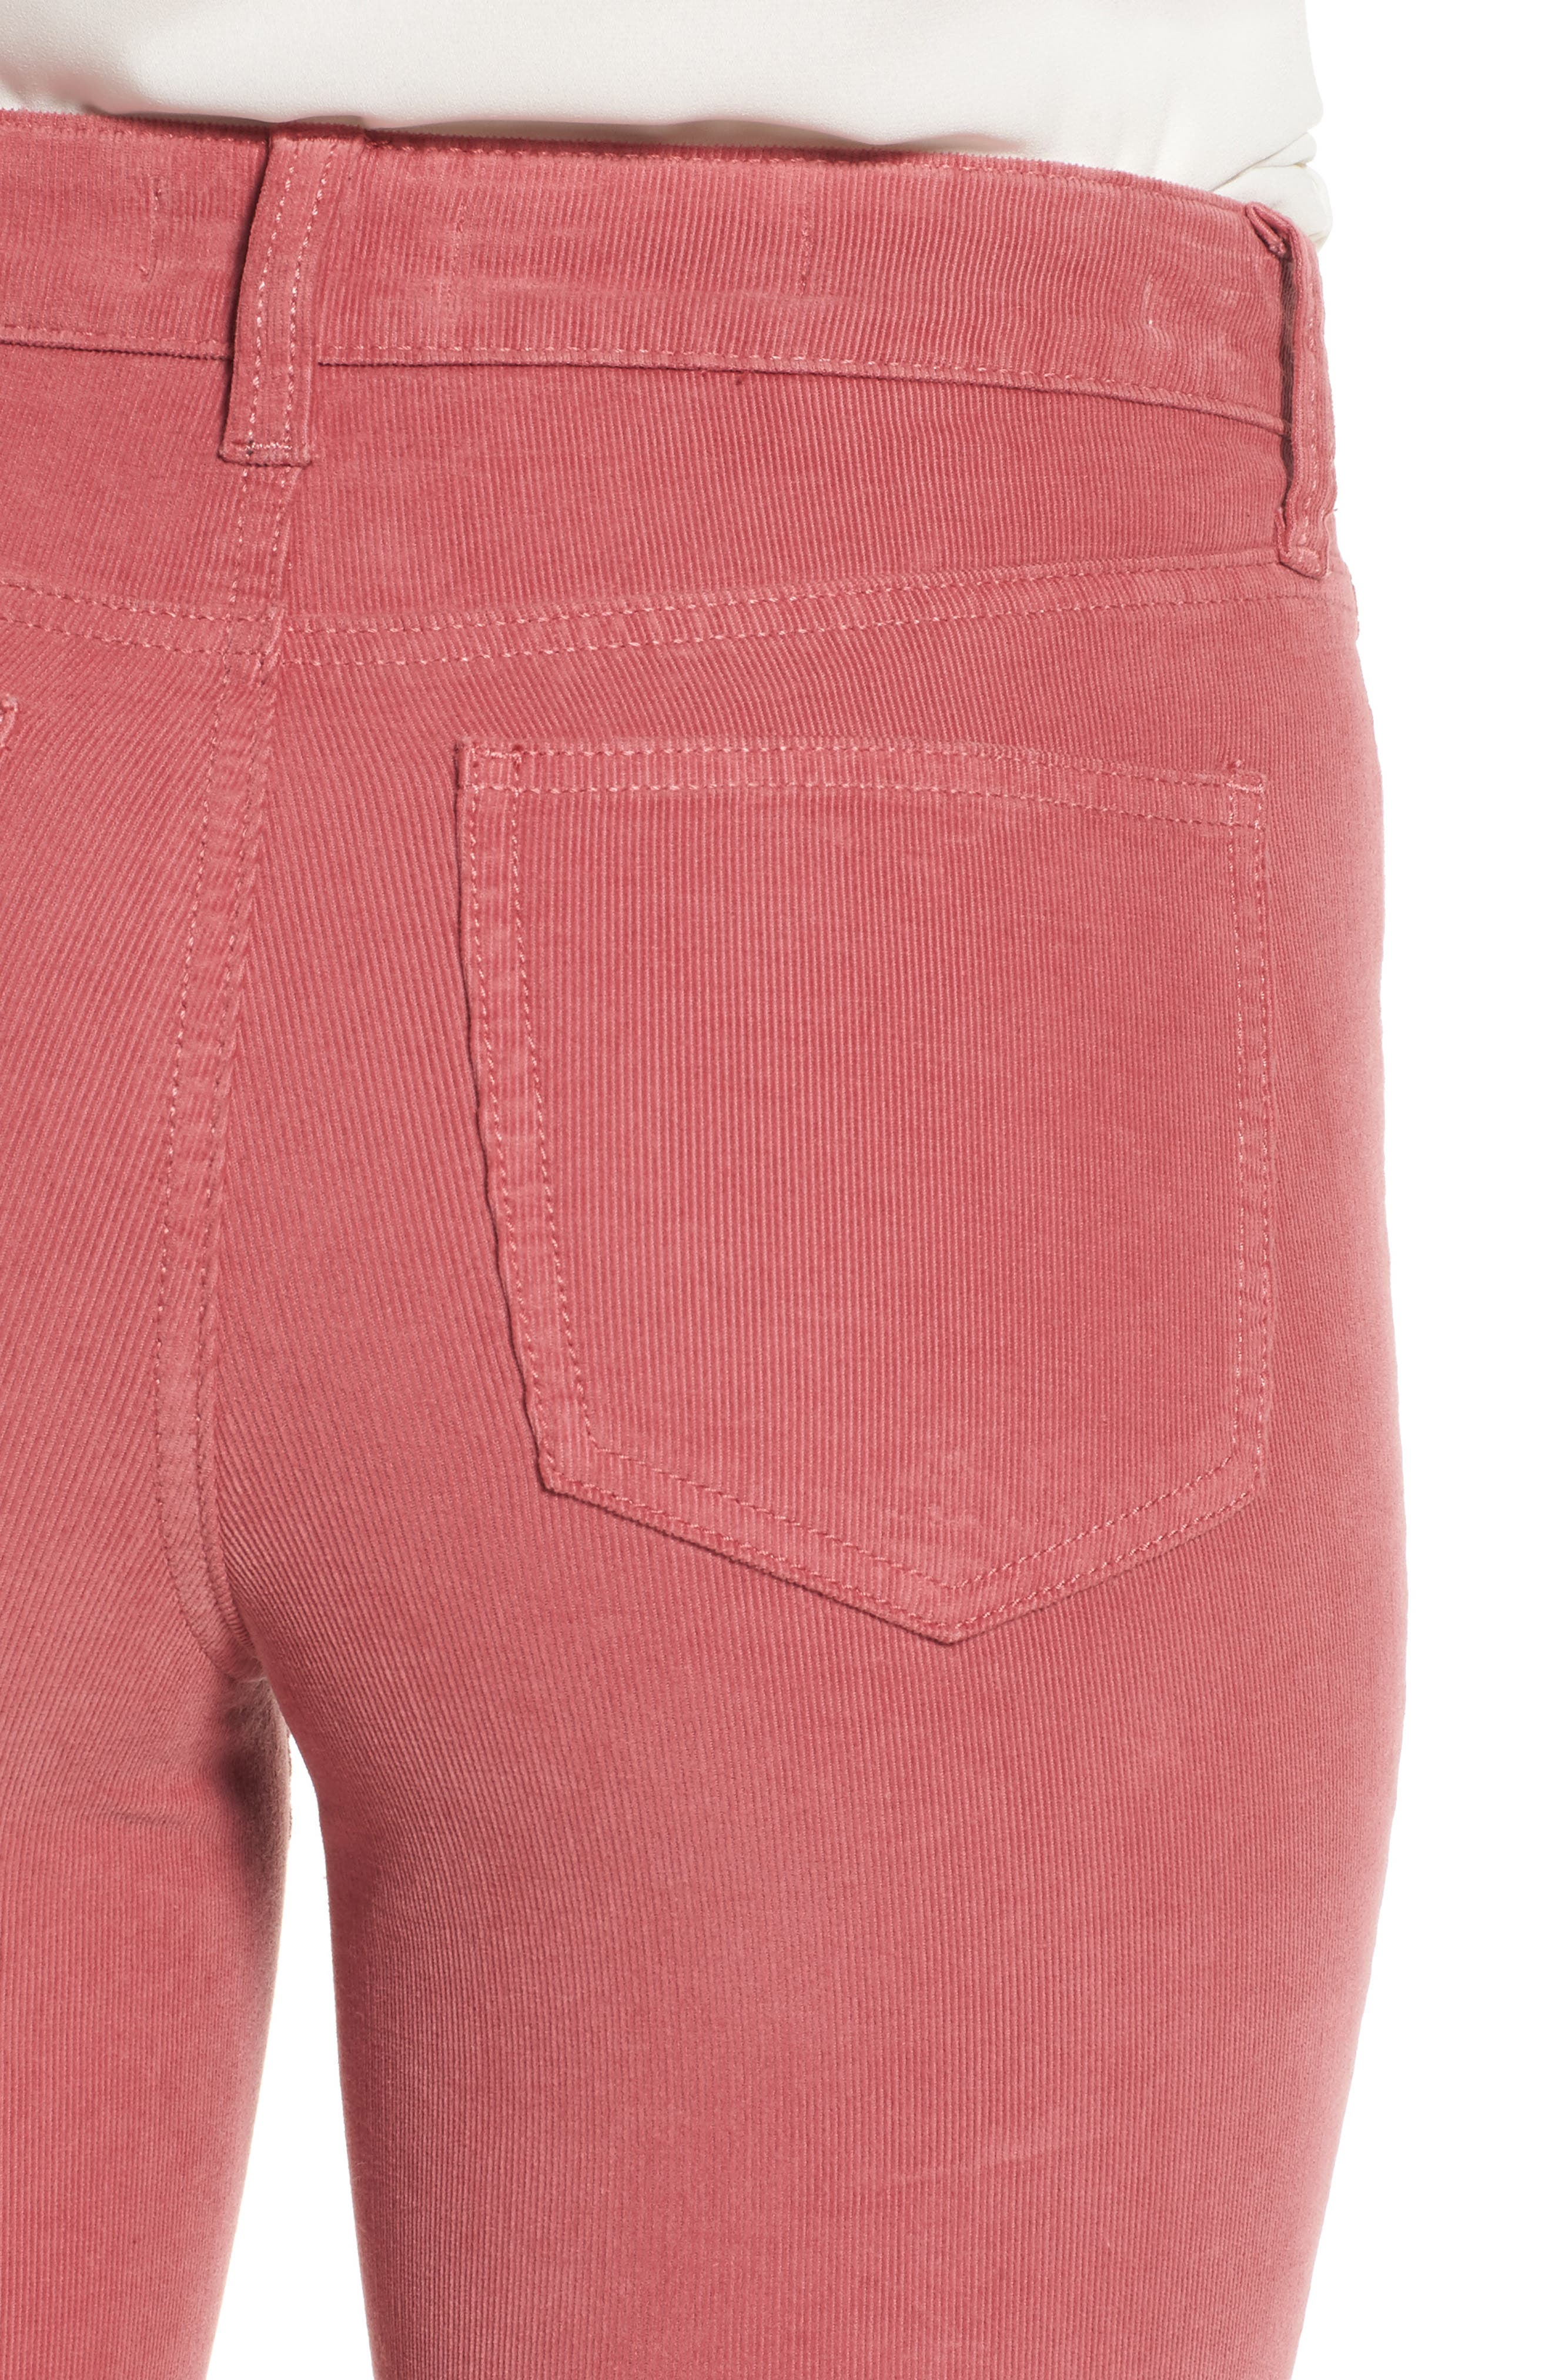 Alina Frayed Stretch Corduroy Ankle Jeans,                             Alternate thumbnail 13, color,